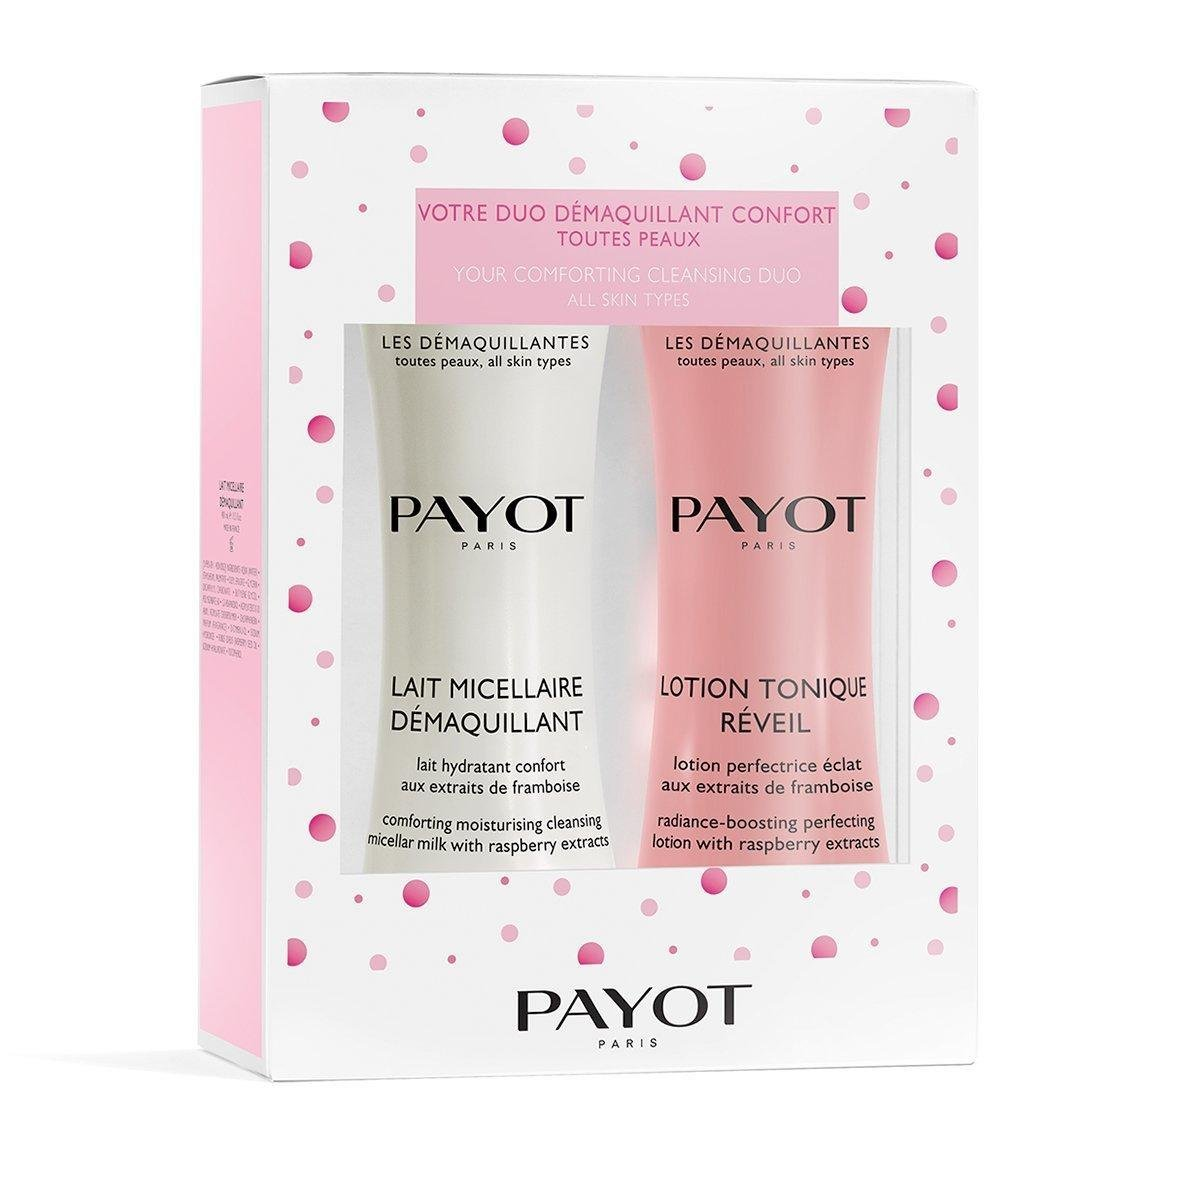 Payot Duo Demaquillant Confort PAYPAYC92563362